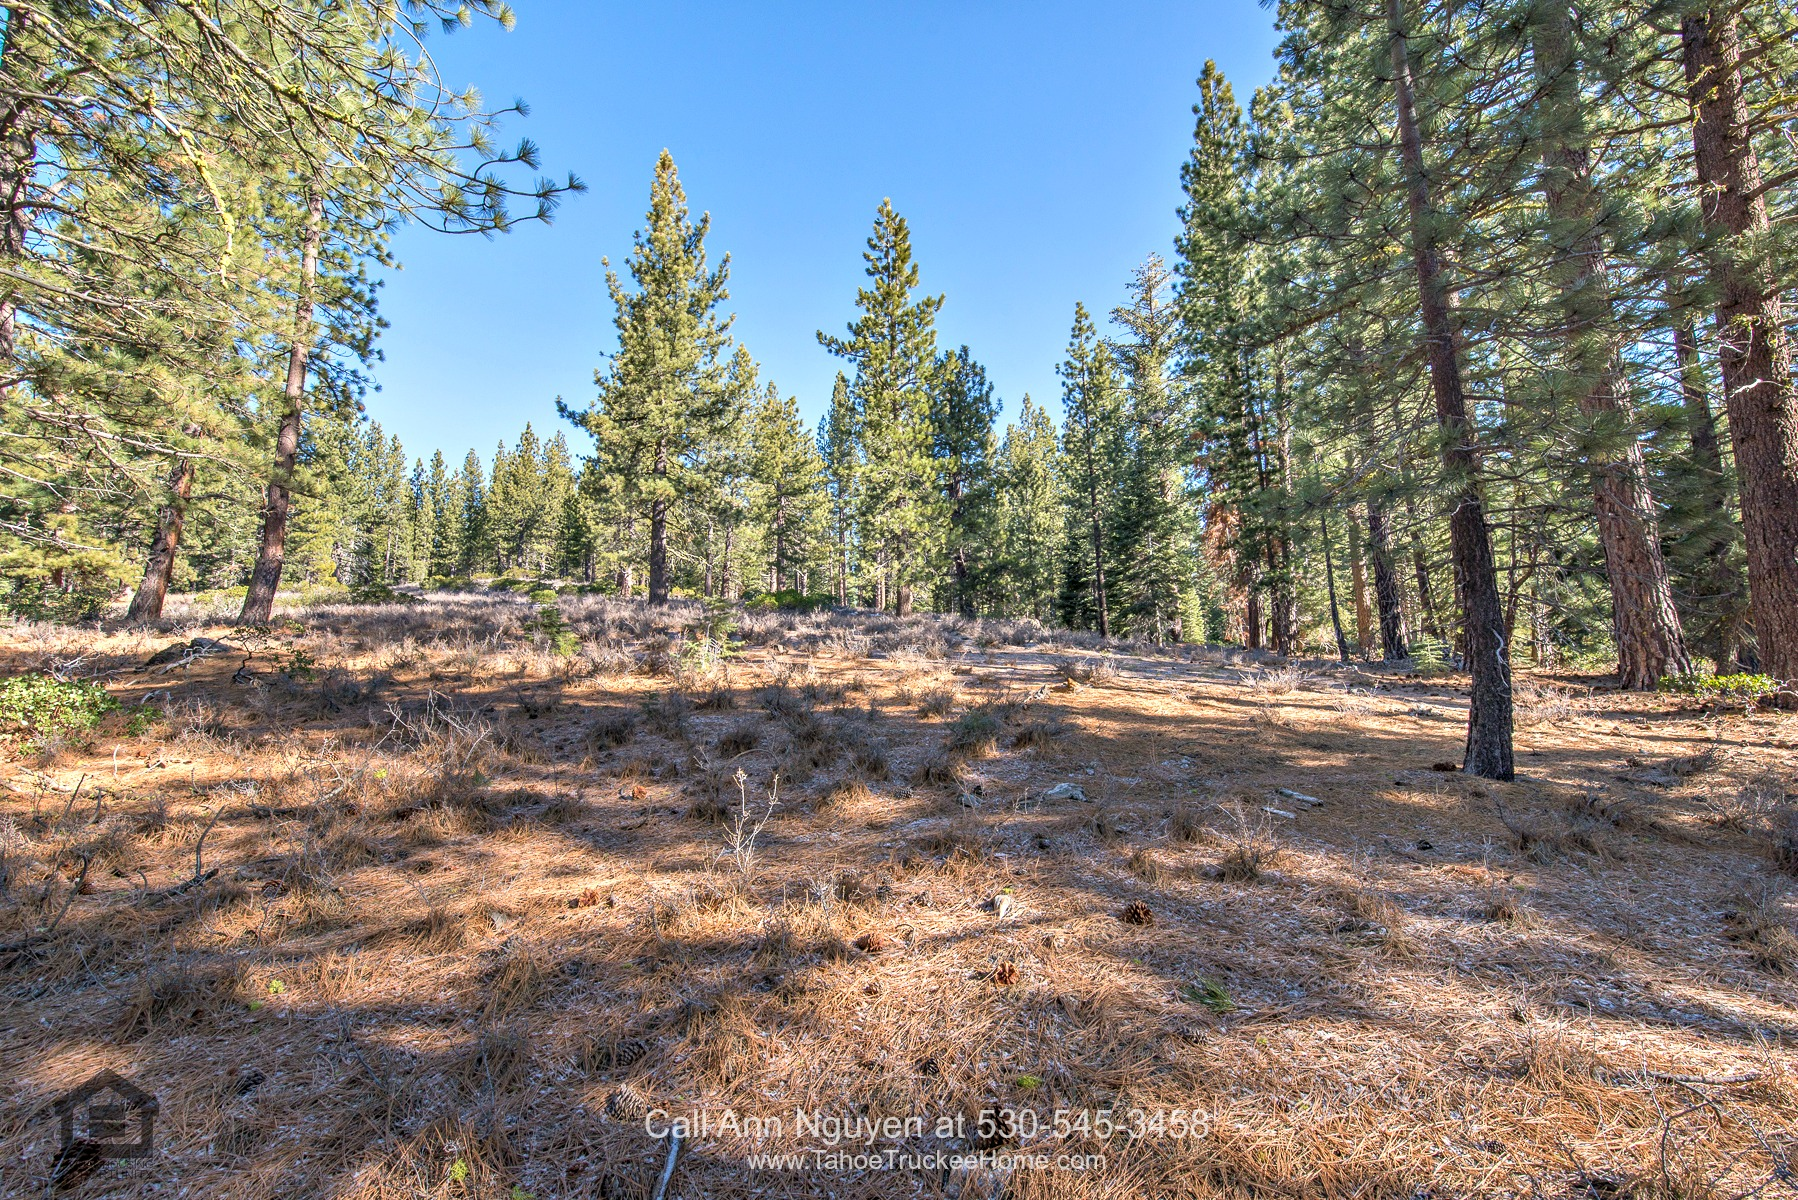 Lot for Sale in Truckee CA - This Truckee CA lot for sale delivers ultimate privacy and retreat in an idyllic mountainside setting.